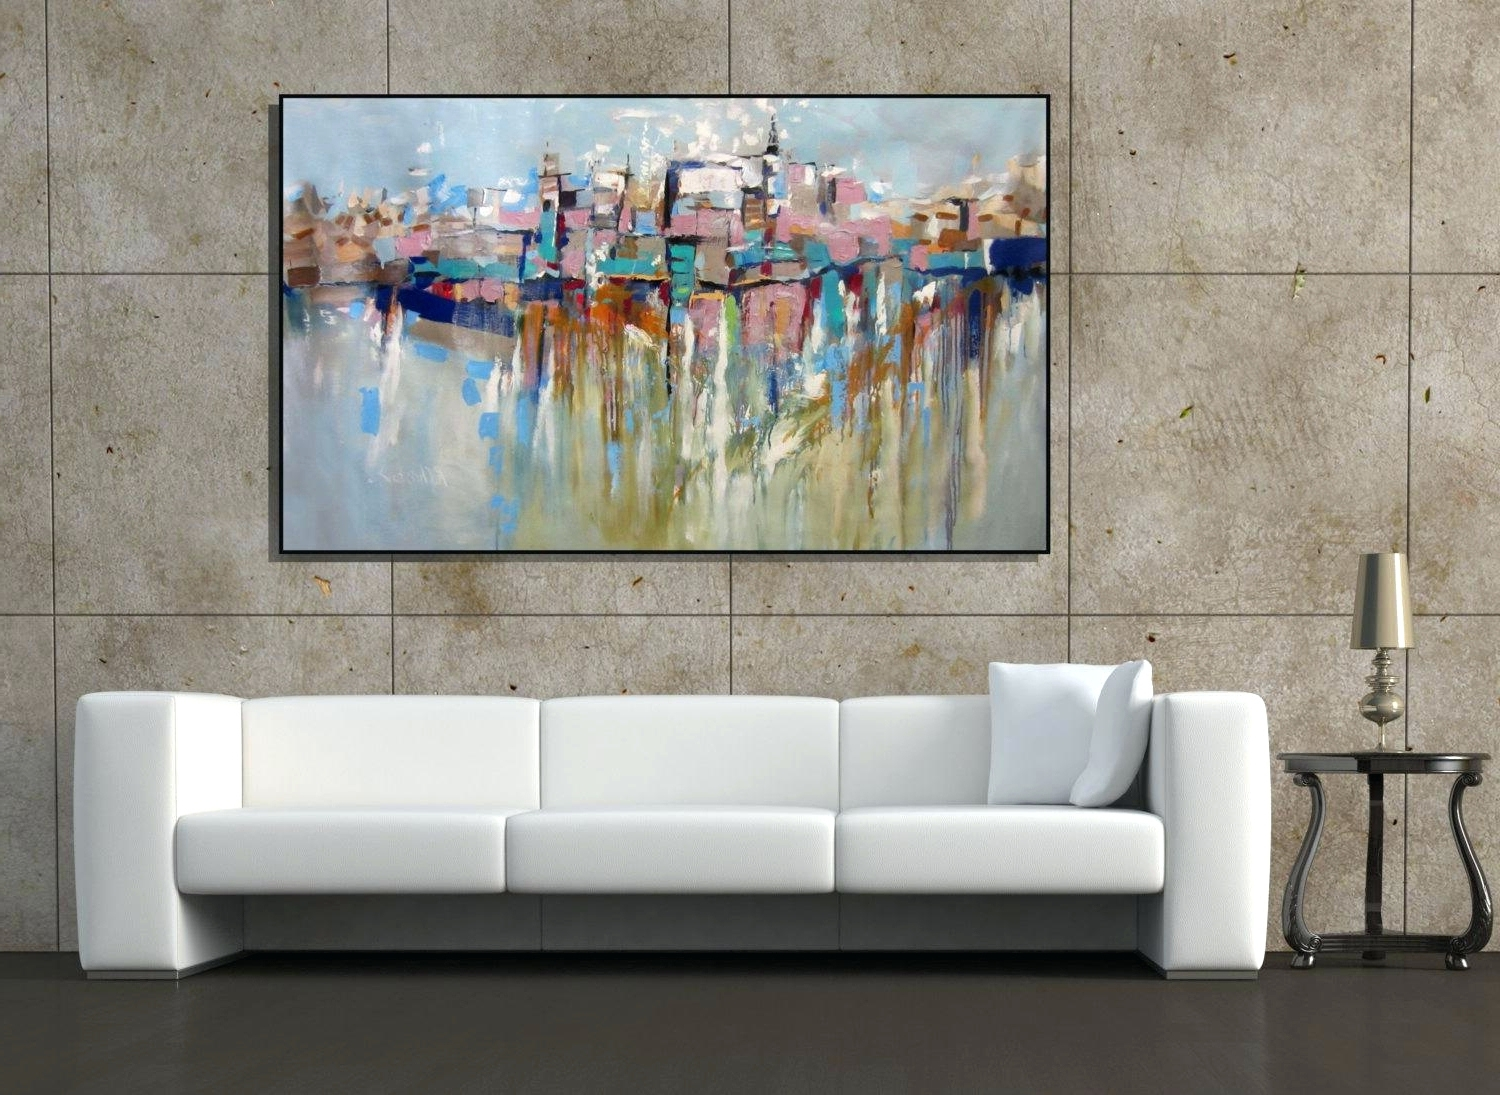 Wall Arts ~ Extra Large Wall Art For Sale Large Wall Art Canvas In Most Up To Date Very Large Wall Art (View 11 of 15)